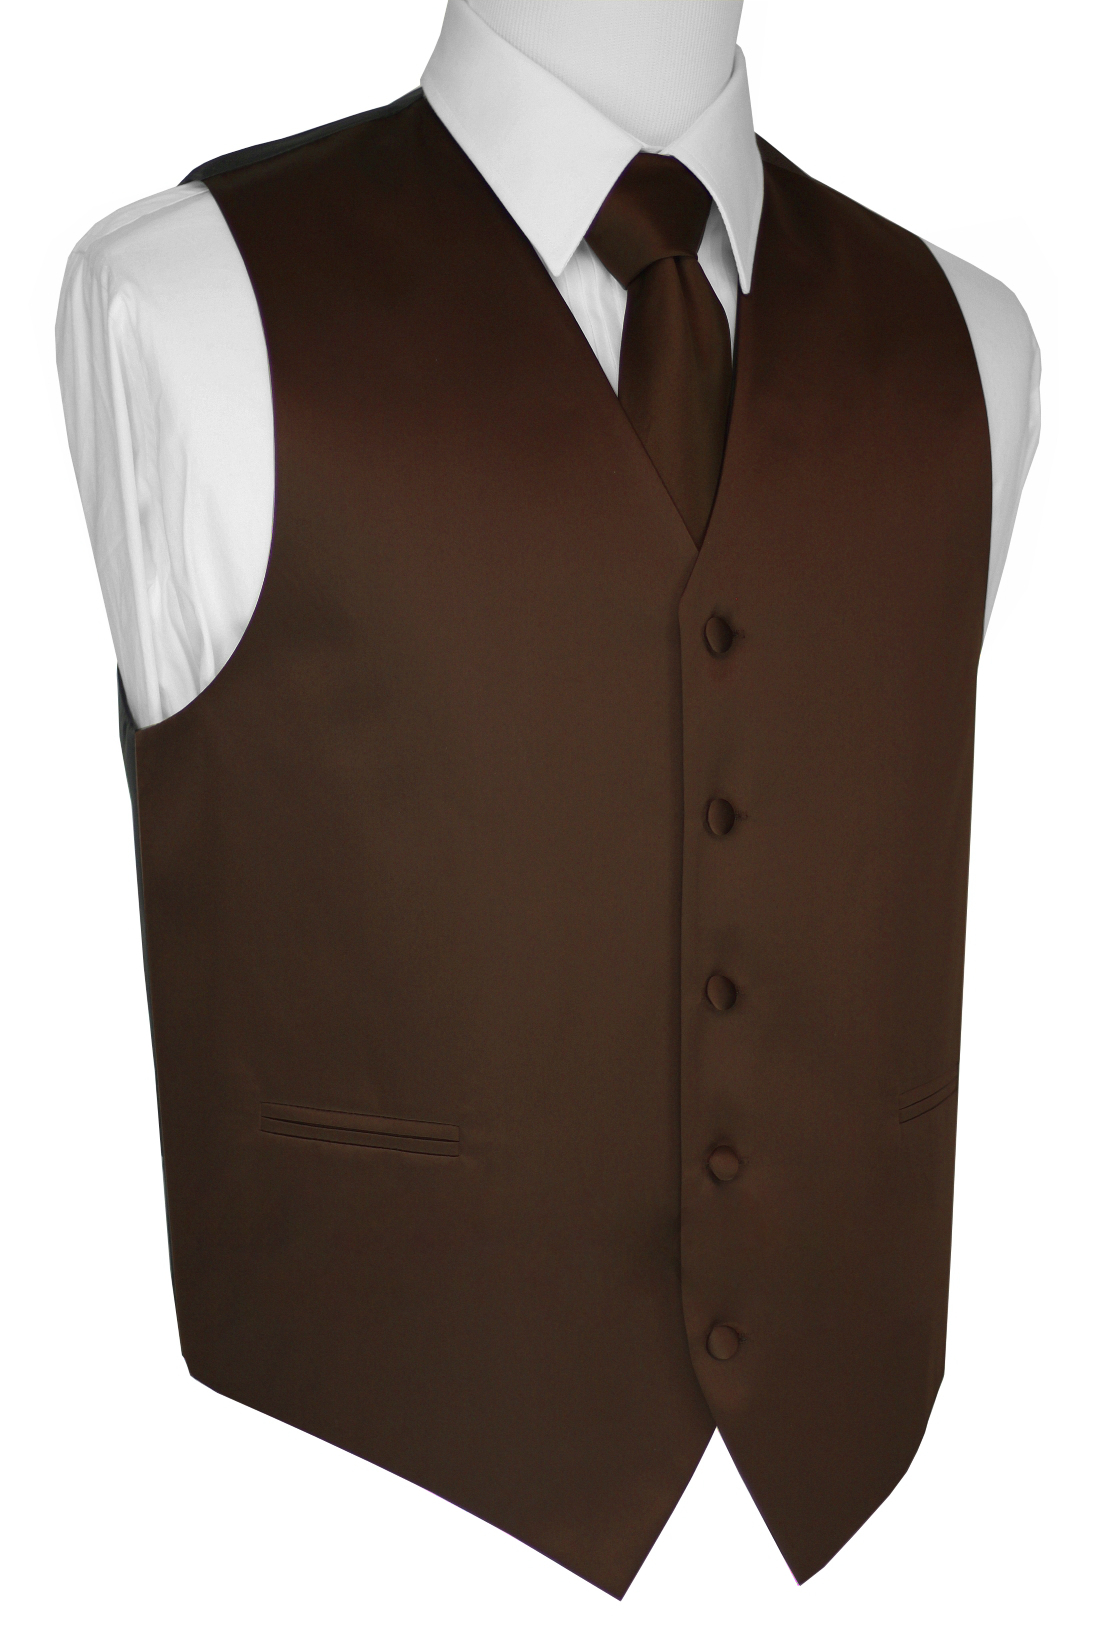 Italian Design, Men's Tuxedo Vest, Tie & Hankie Set - Chocolate